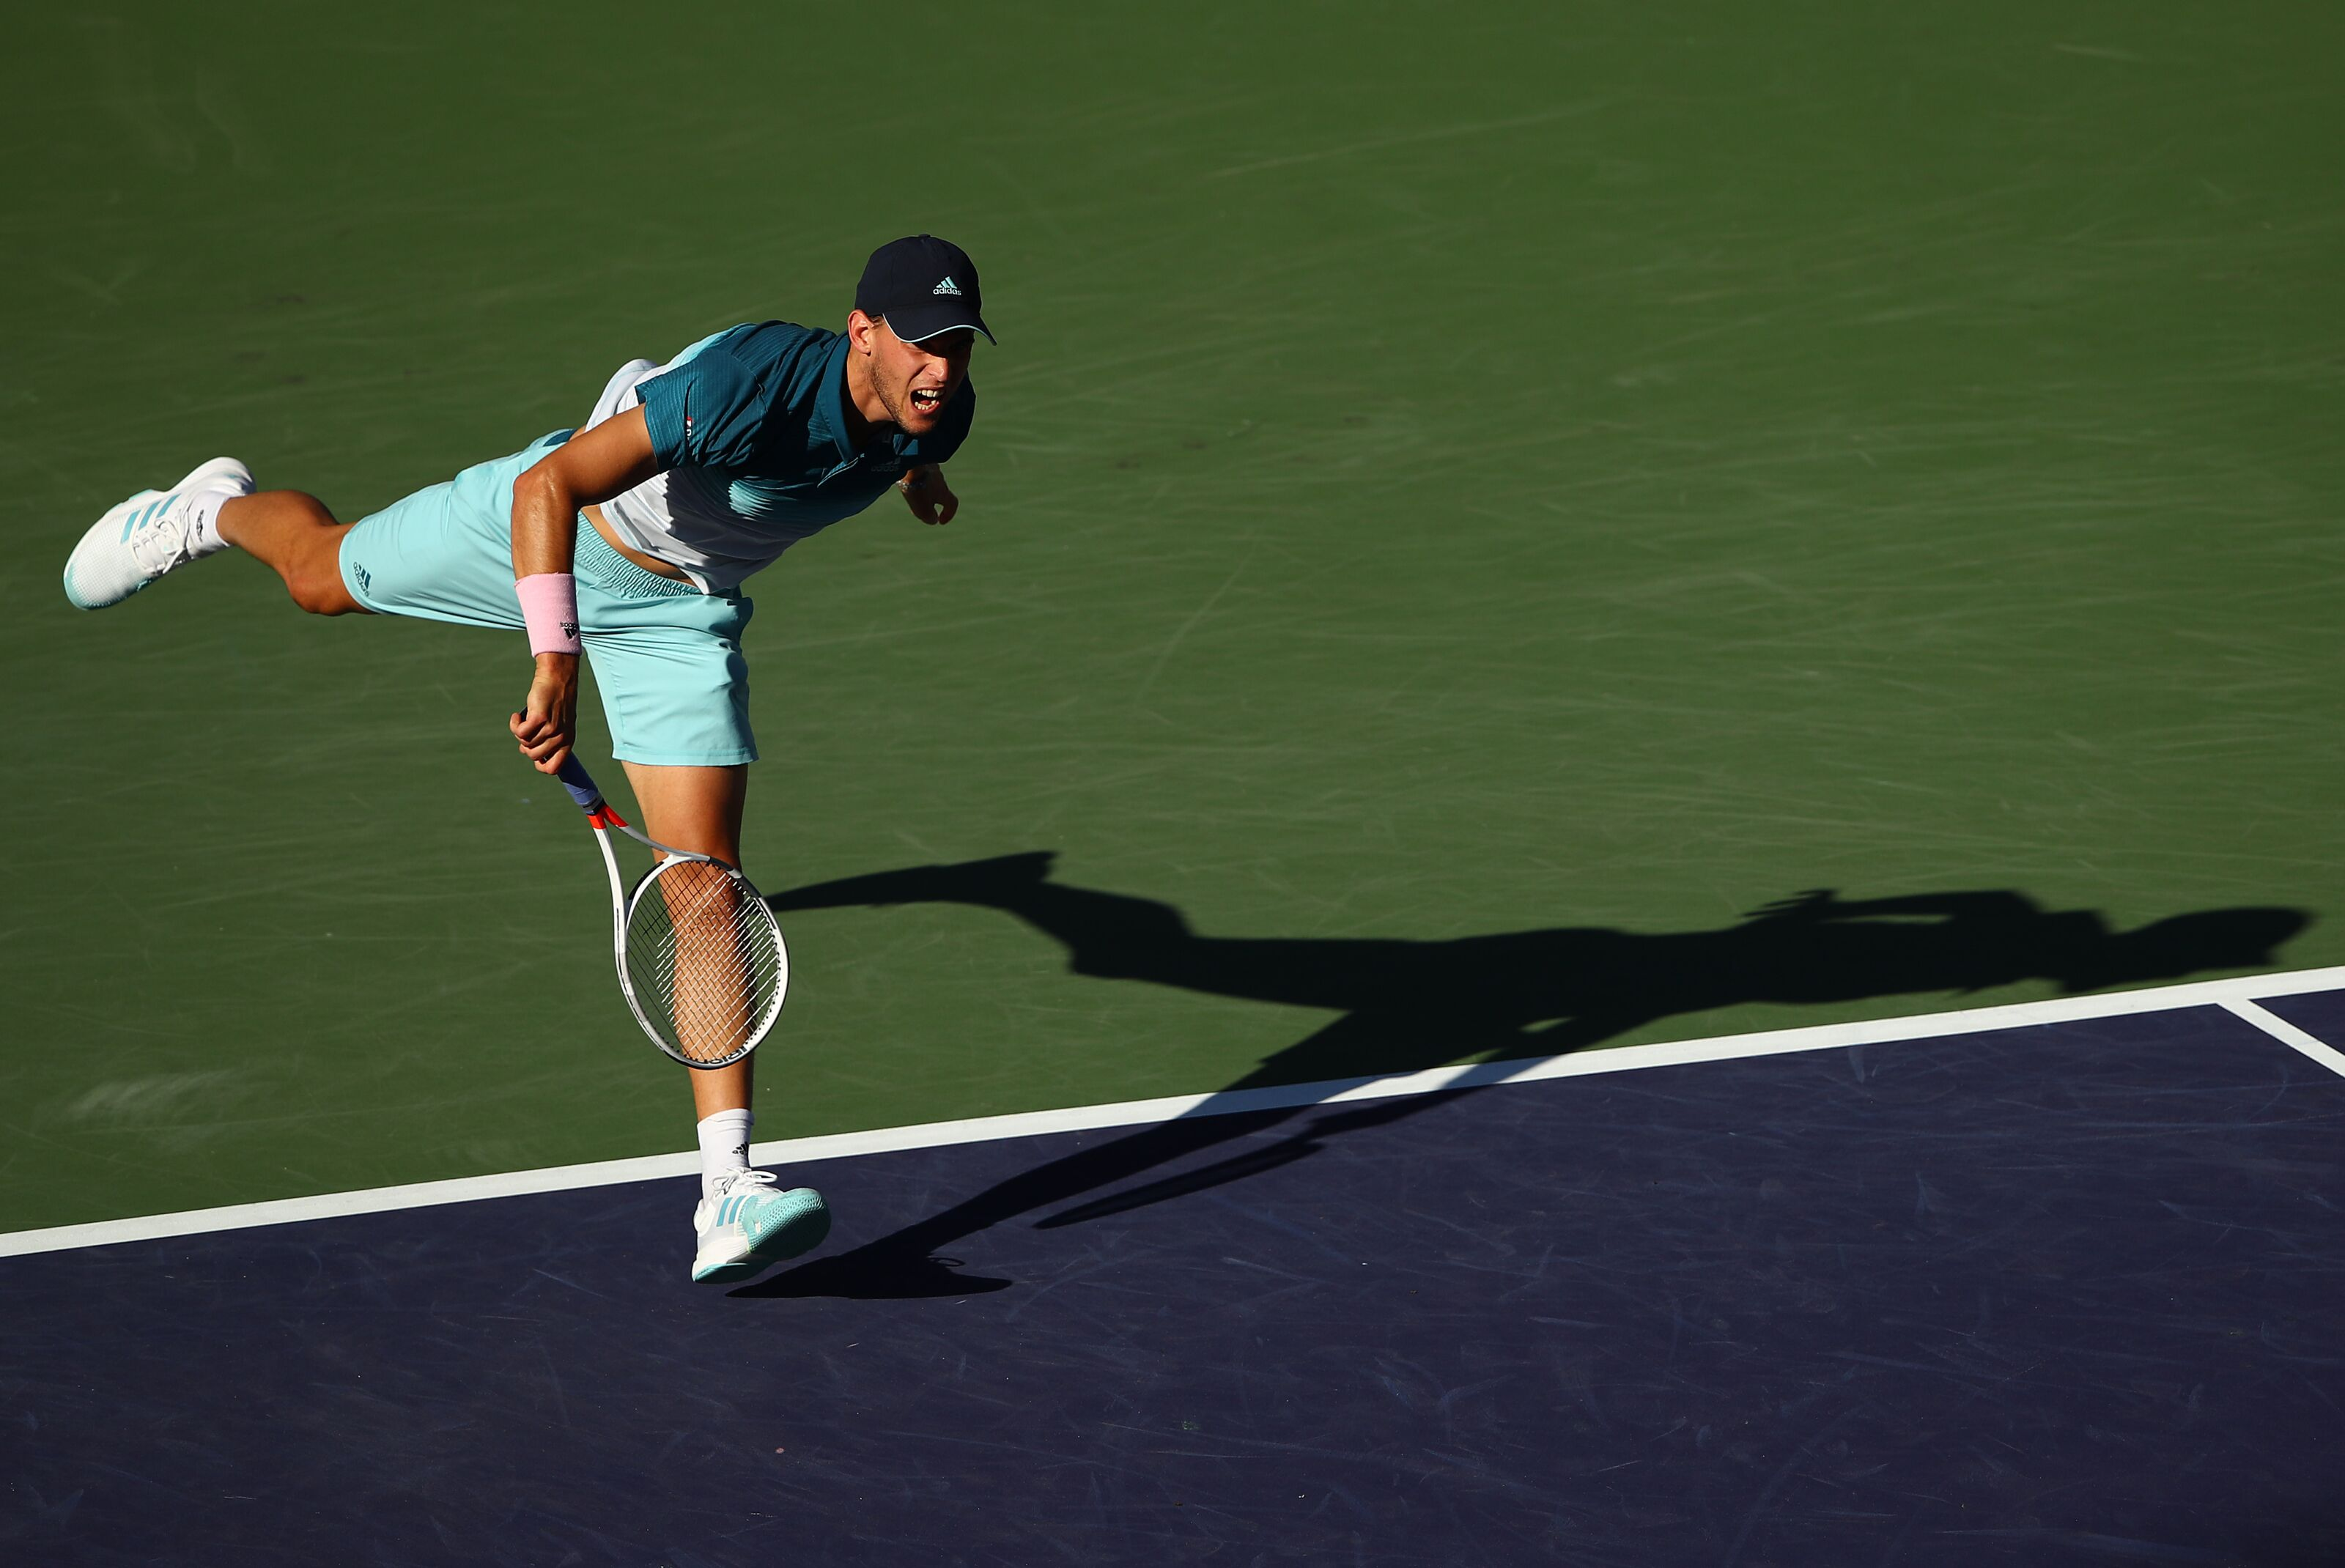 Is Dominic Thiem a new favorite on the 2019 ATP Tour?